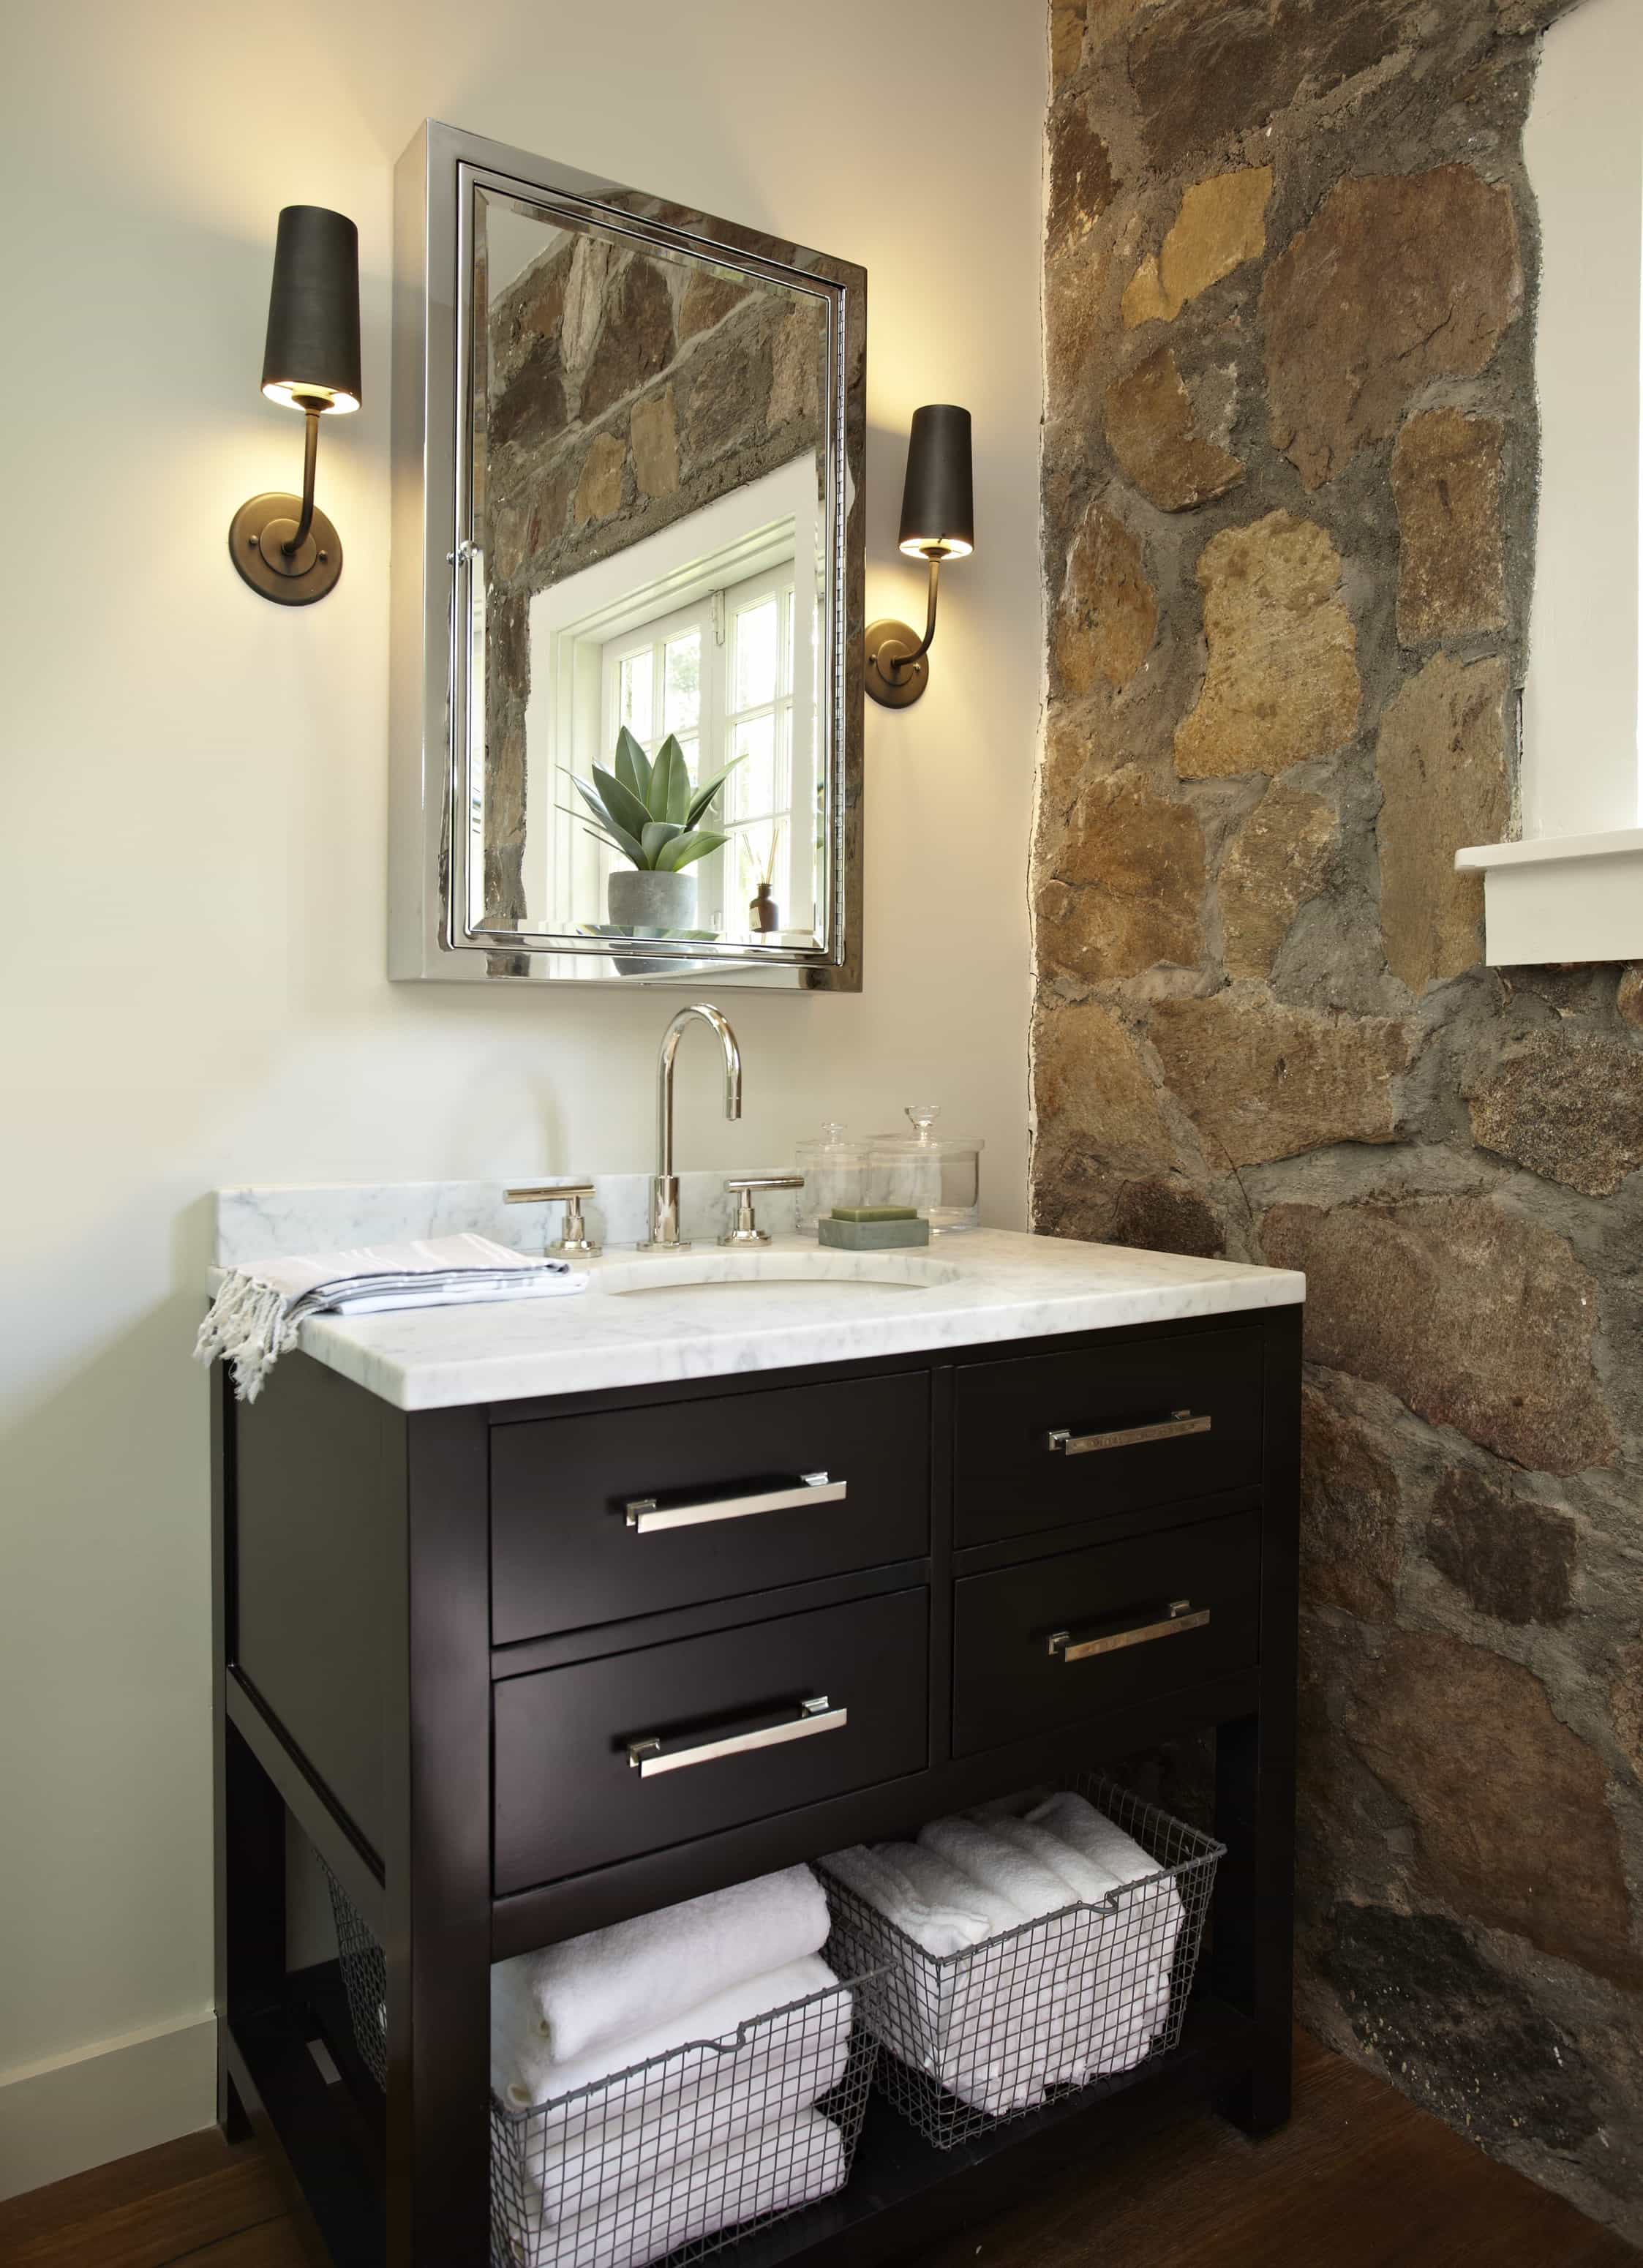 Featured Image of Bathroom With Stone Accent Wall And Contemporary Wood Vanity